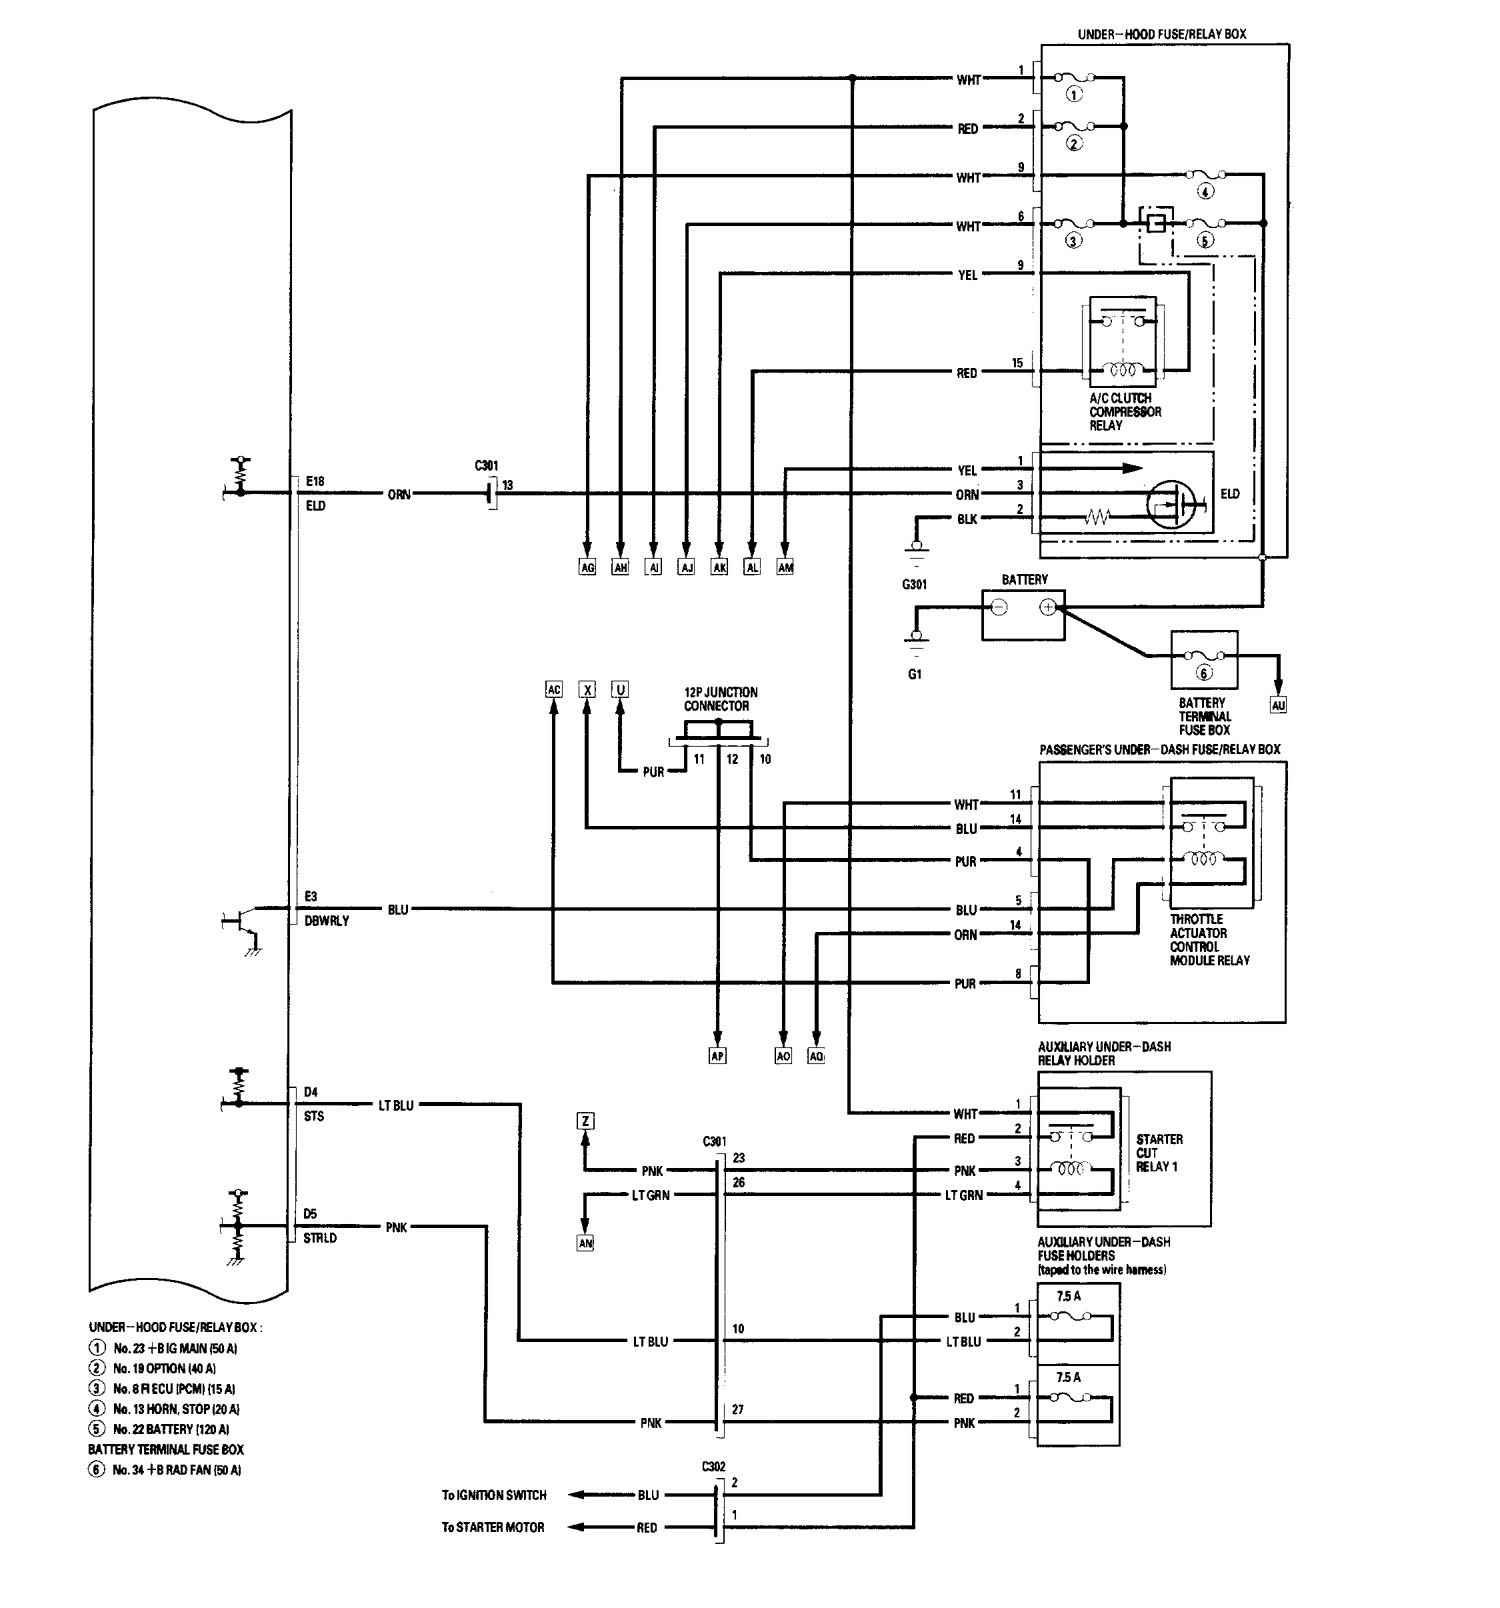 2003 Acura Tl Fuse Box Wiring Library Saturn L200 2006 Rl 35 Diagram Diagrams U2022 L300